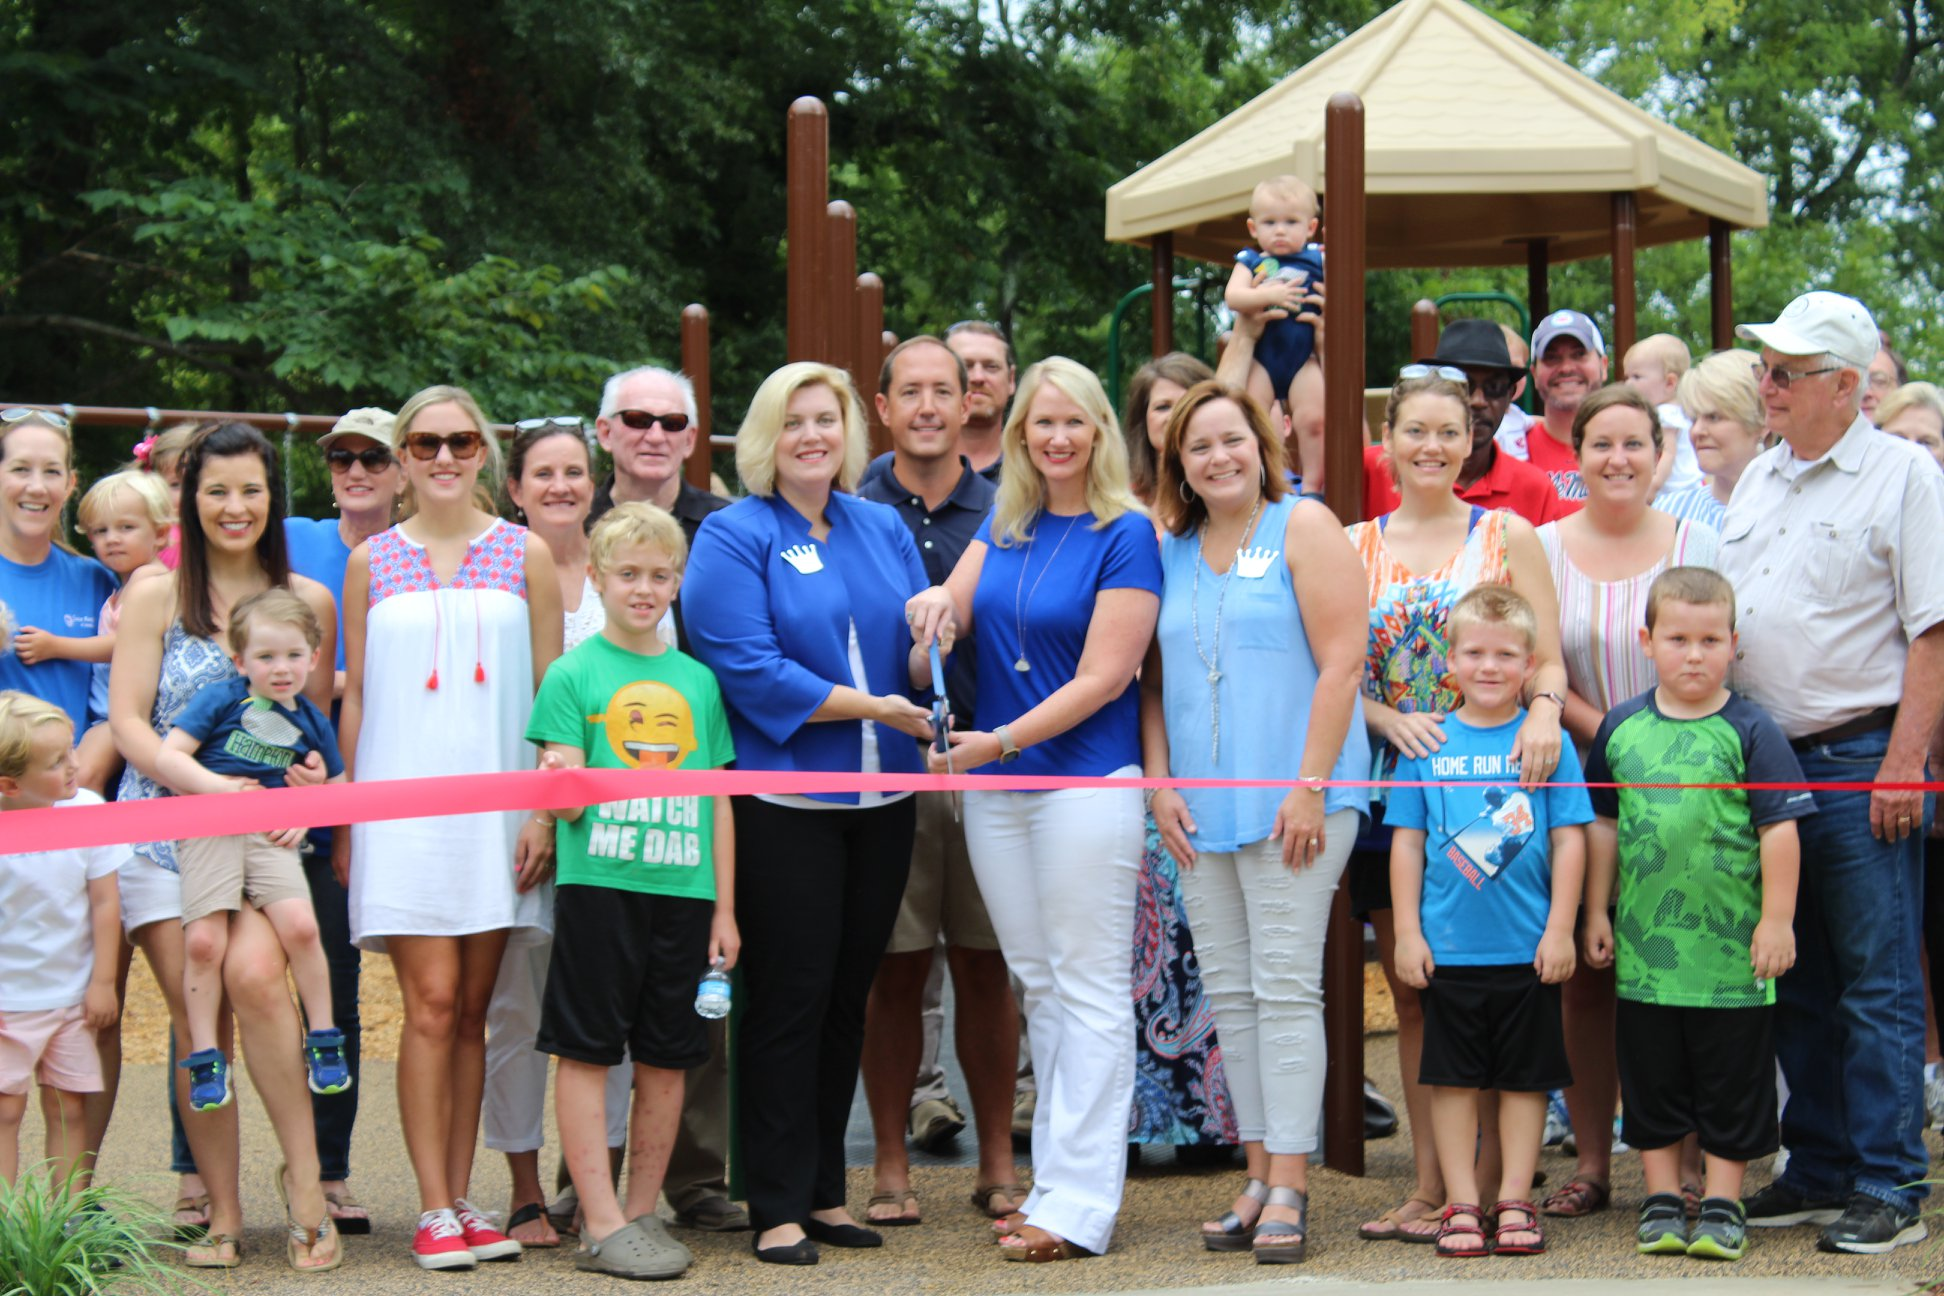 Crown Park - Junior Auxiliary of Columbus partnered with the Lowndes County Board of Supervisors in the building of an inclusive playground at the Columbus Soccer Complex. JA of Columbus donated $75,000 towards the building of the play area which was open to the public in August 2018.